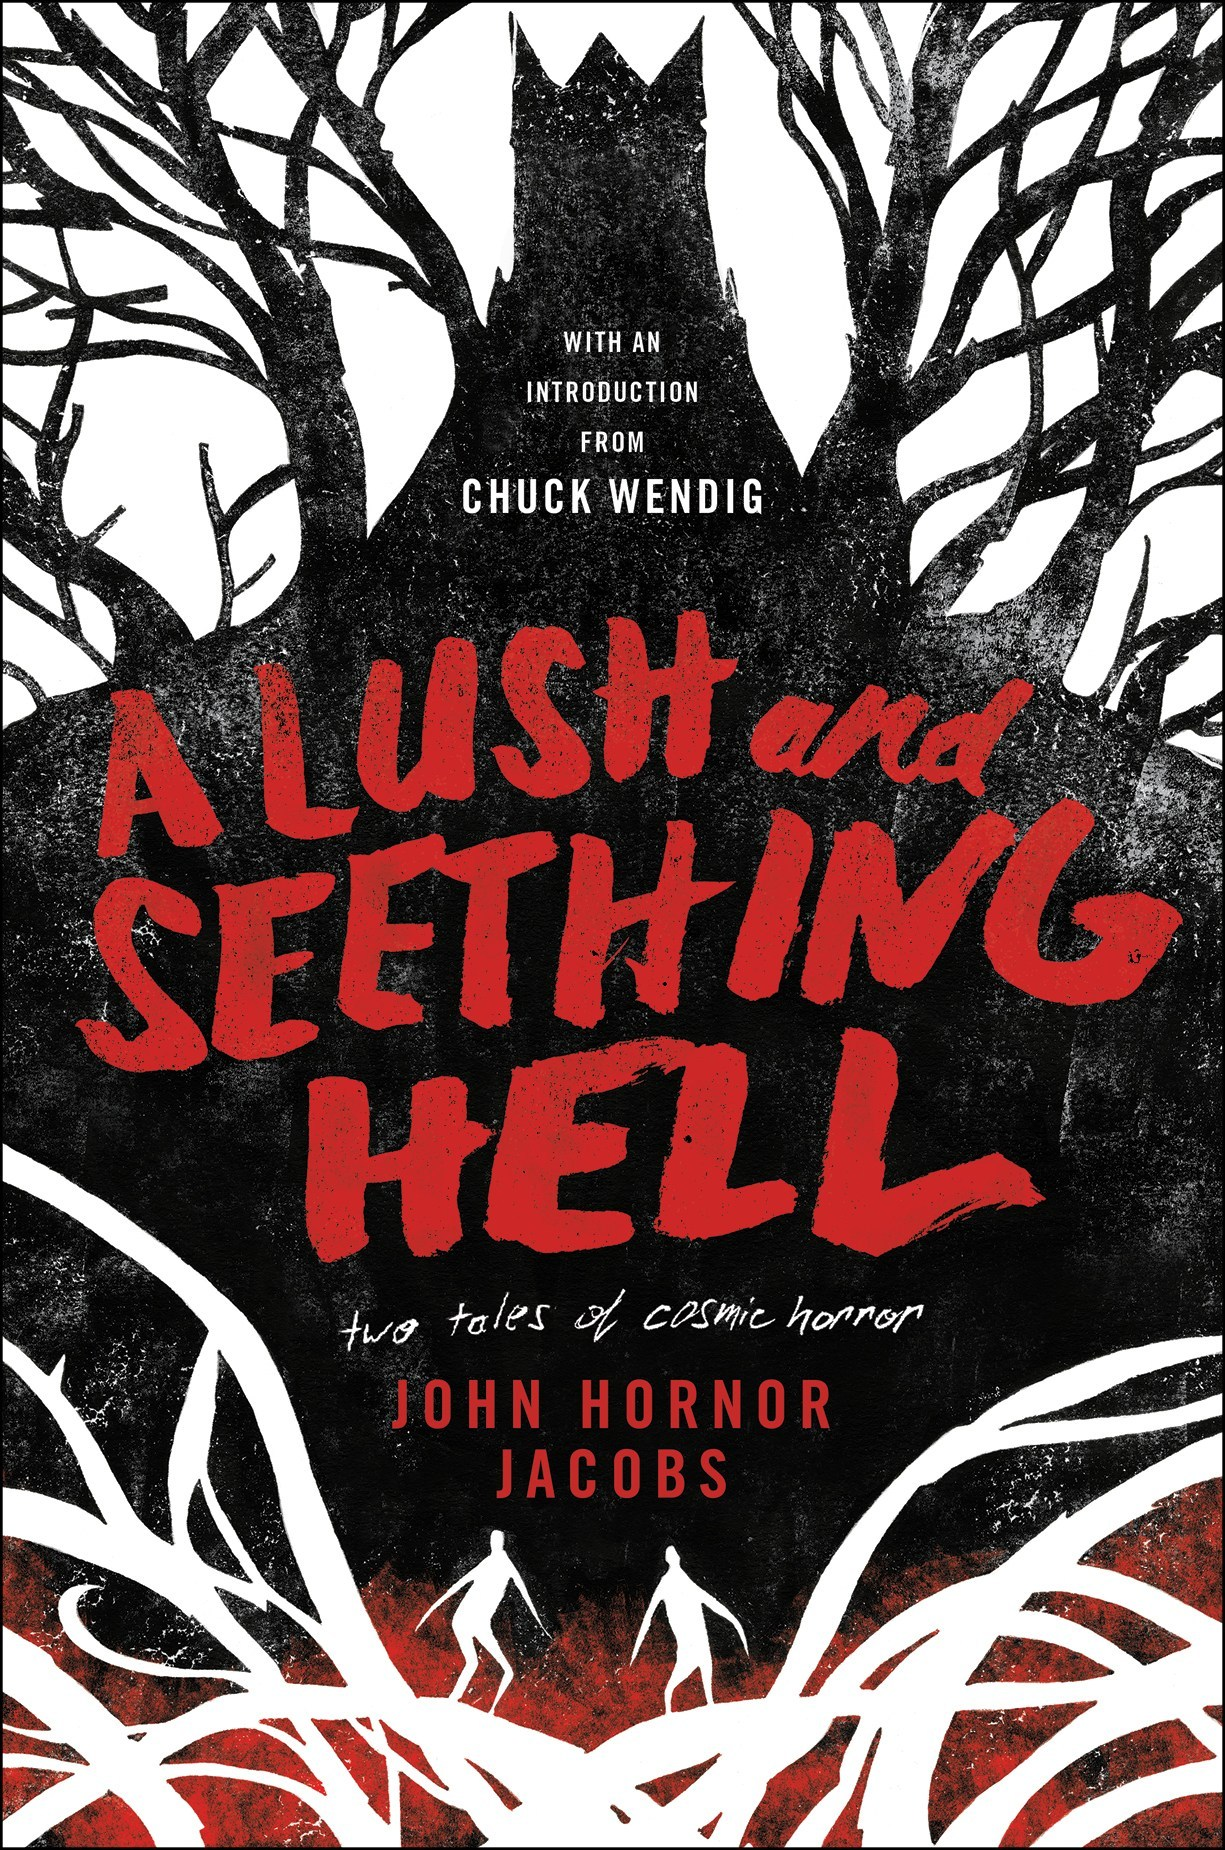 A Lush and Seething Hell_John Hornor Jacobs.jpg